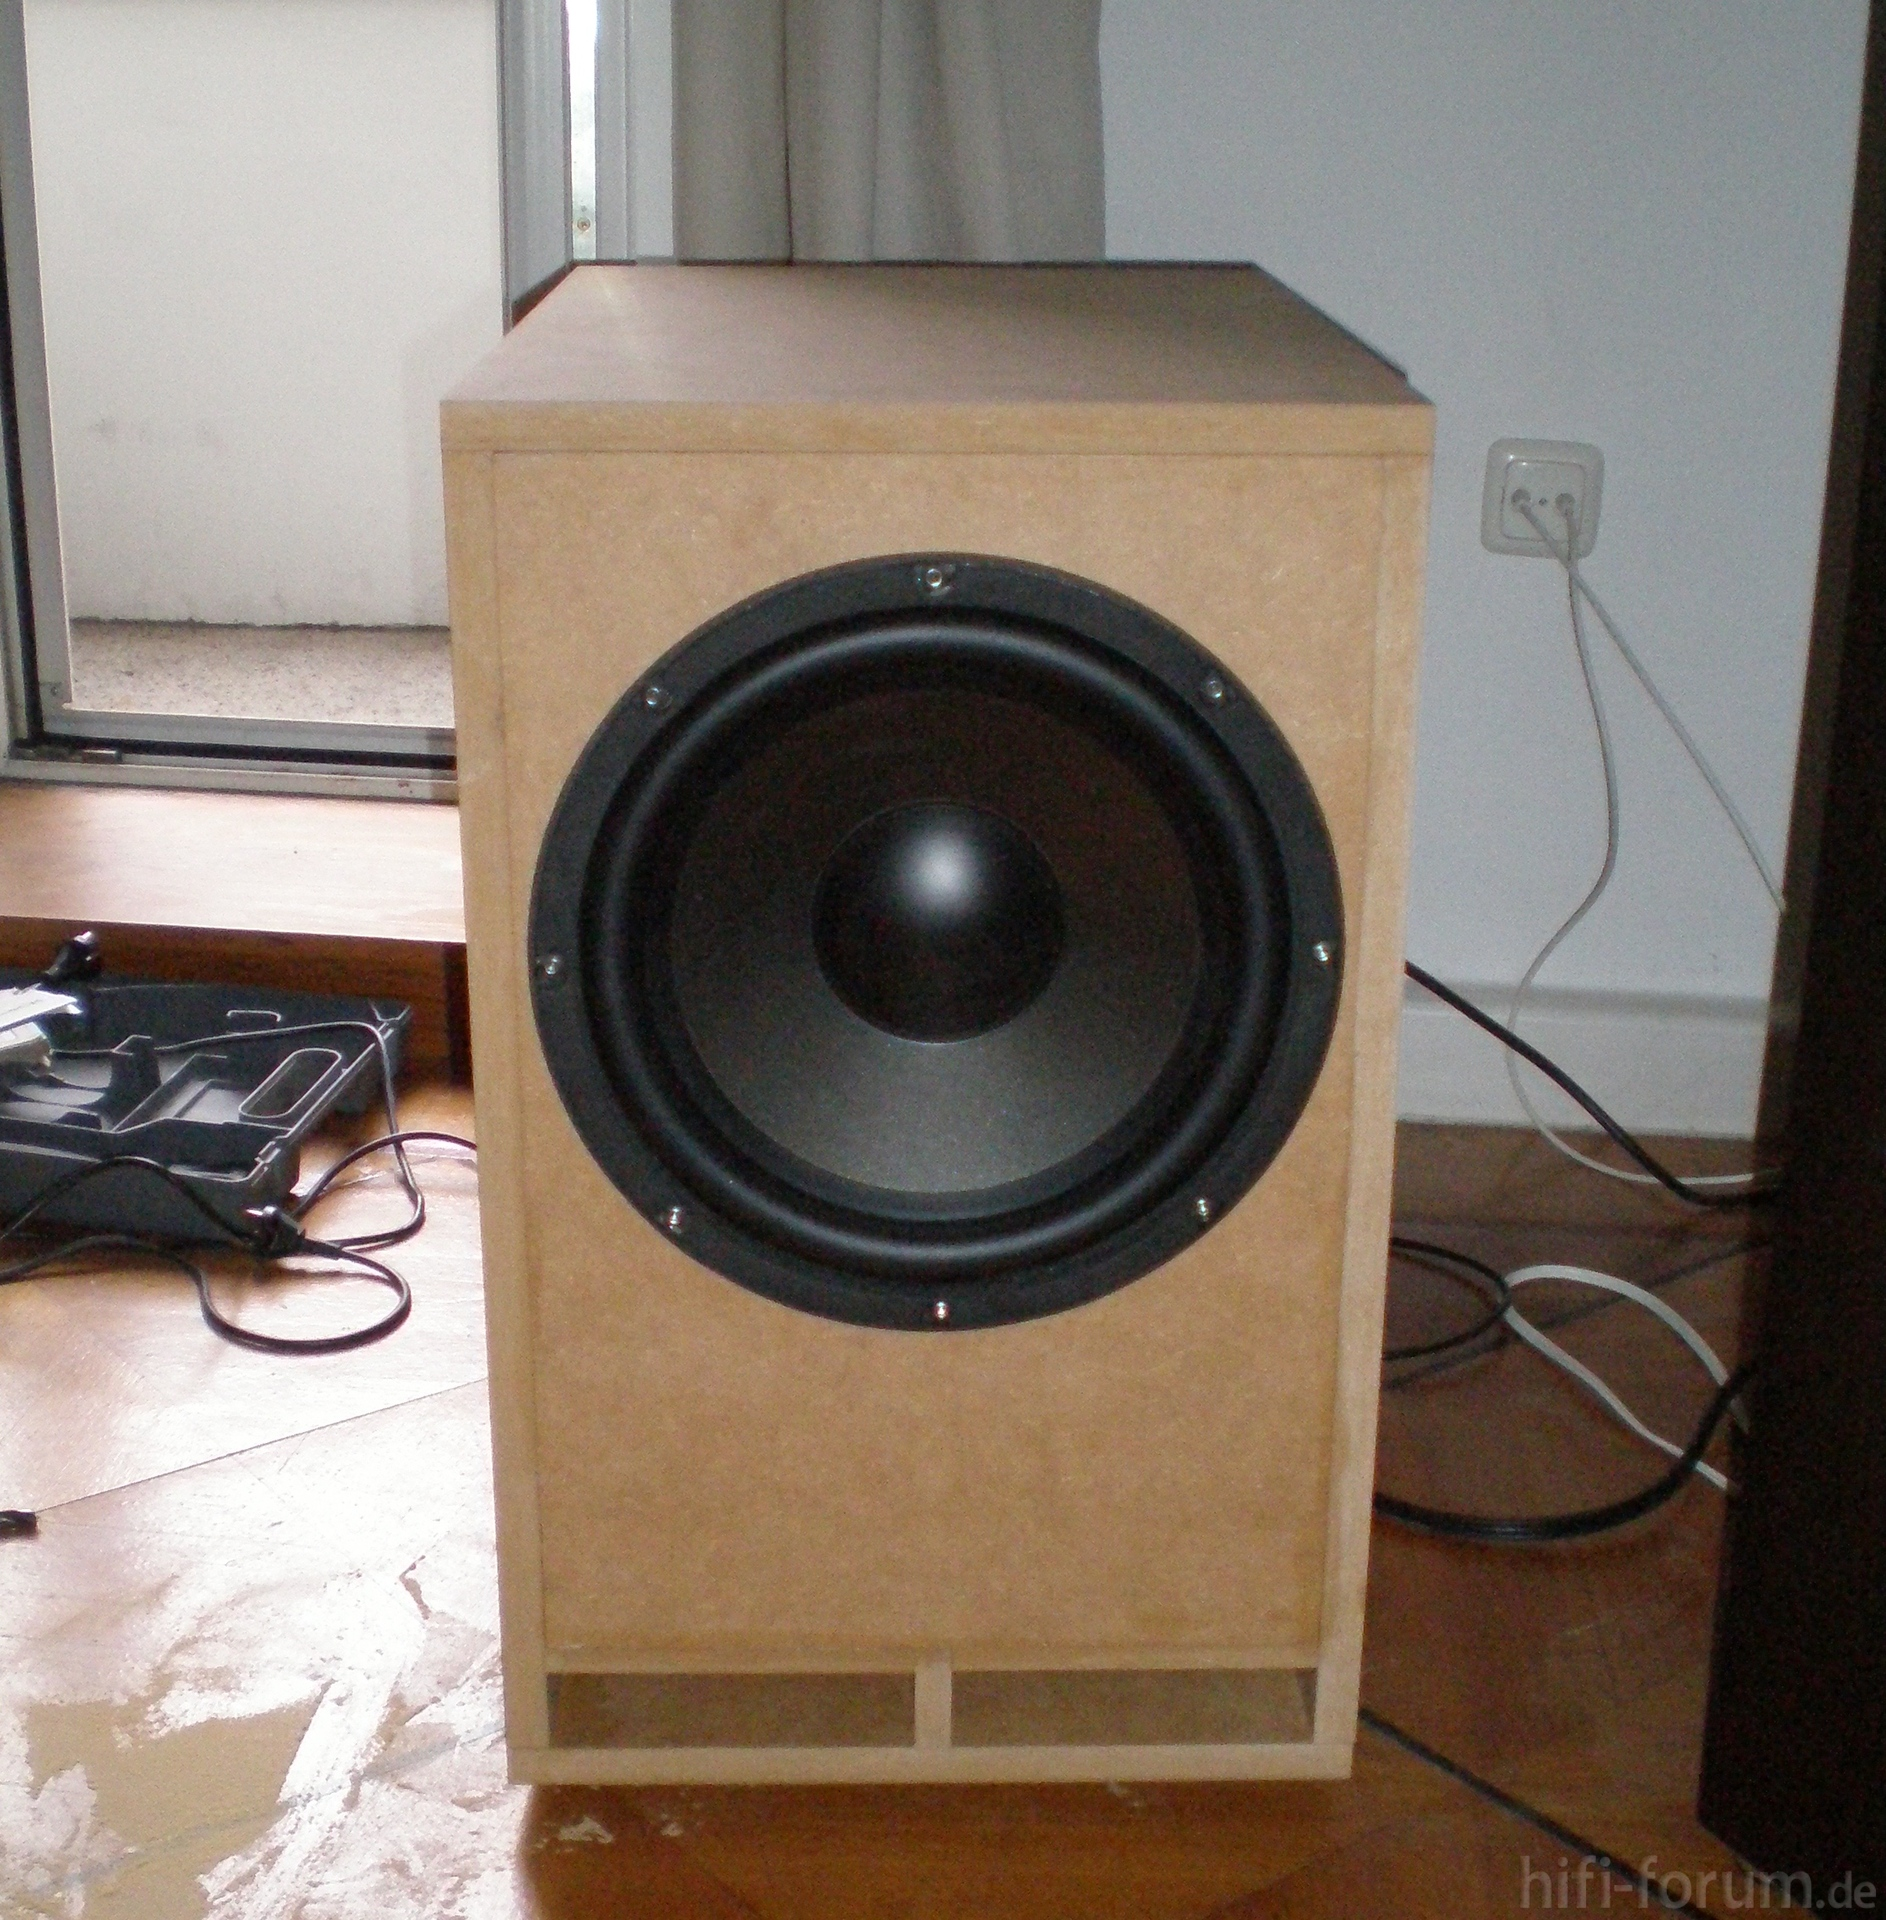 diy subwoofer awm124 awm124 diy doityourself. Black Bedroom Furniture Sets. Home Design Ideas